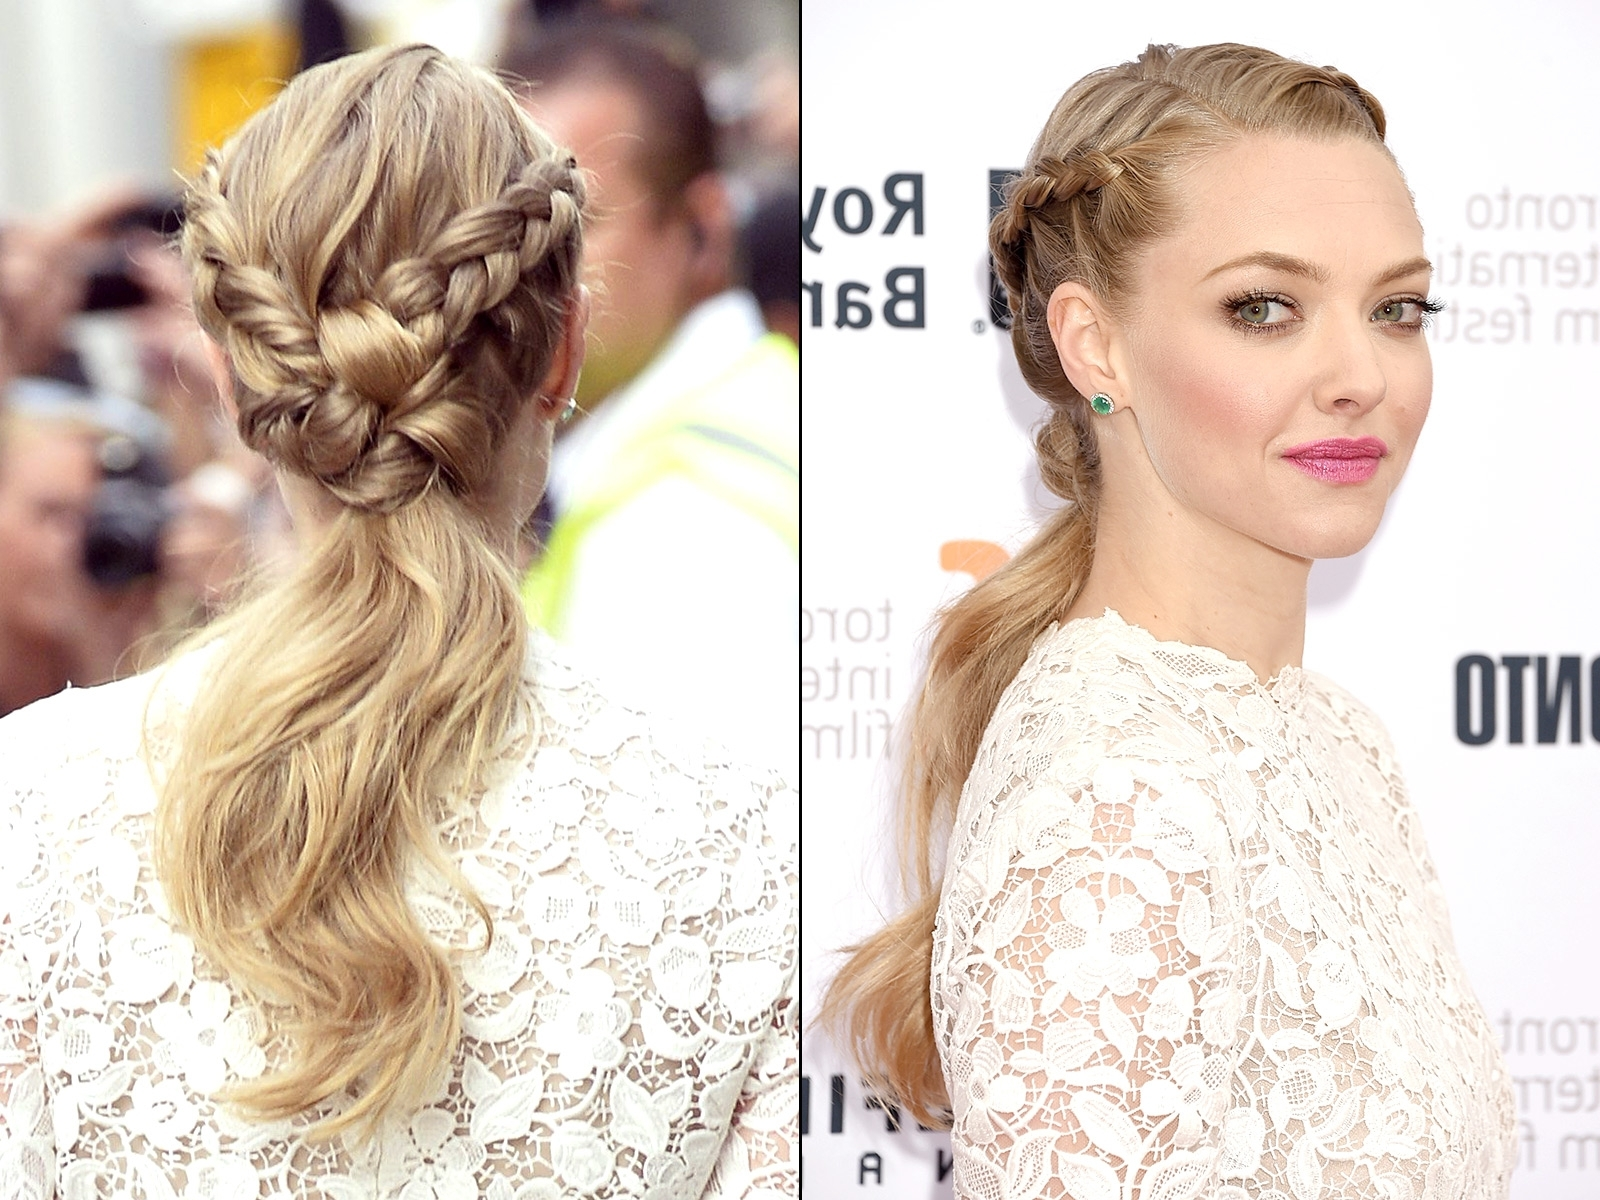 Celebs' Braided Hairstyles On The Red Carpet For Well Known Braided Hairstyles For Red Hair (View 8 of 15)